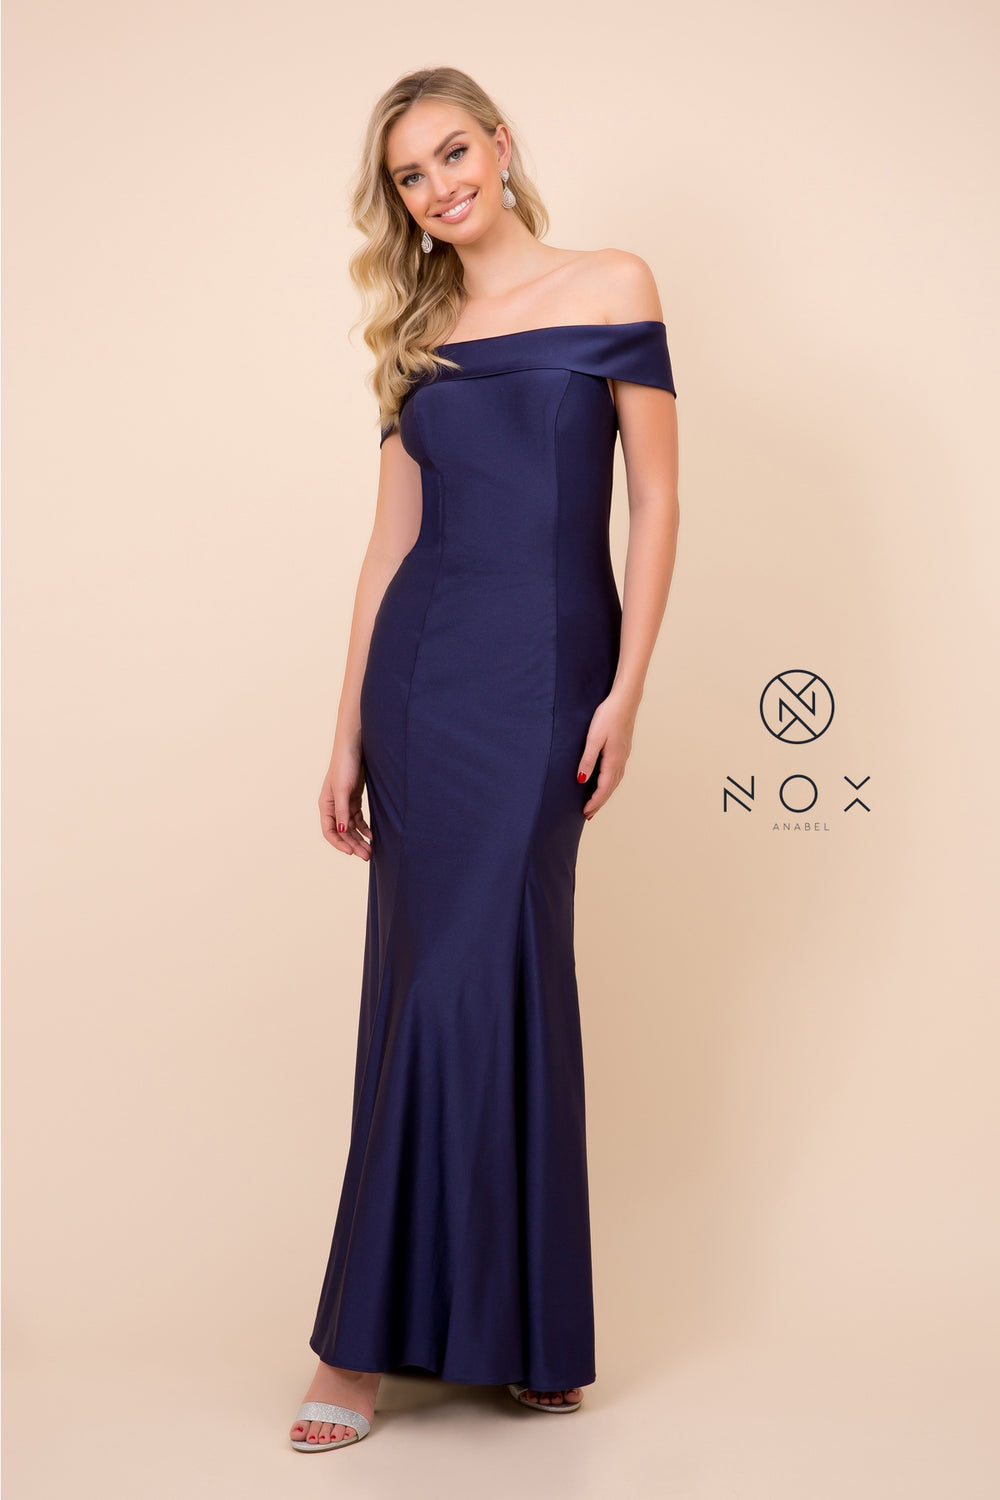 OFF SHOULDERS STRAIGHT NECKLINE MERMAID PARTY GOWN_N295 BY NARIANNA